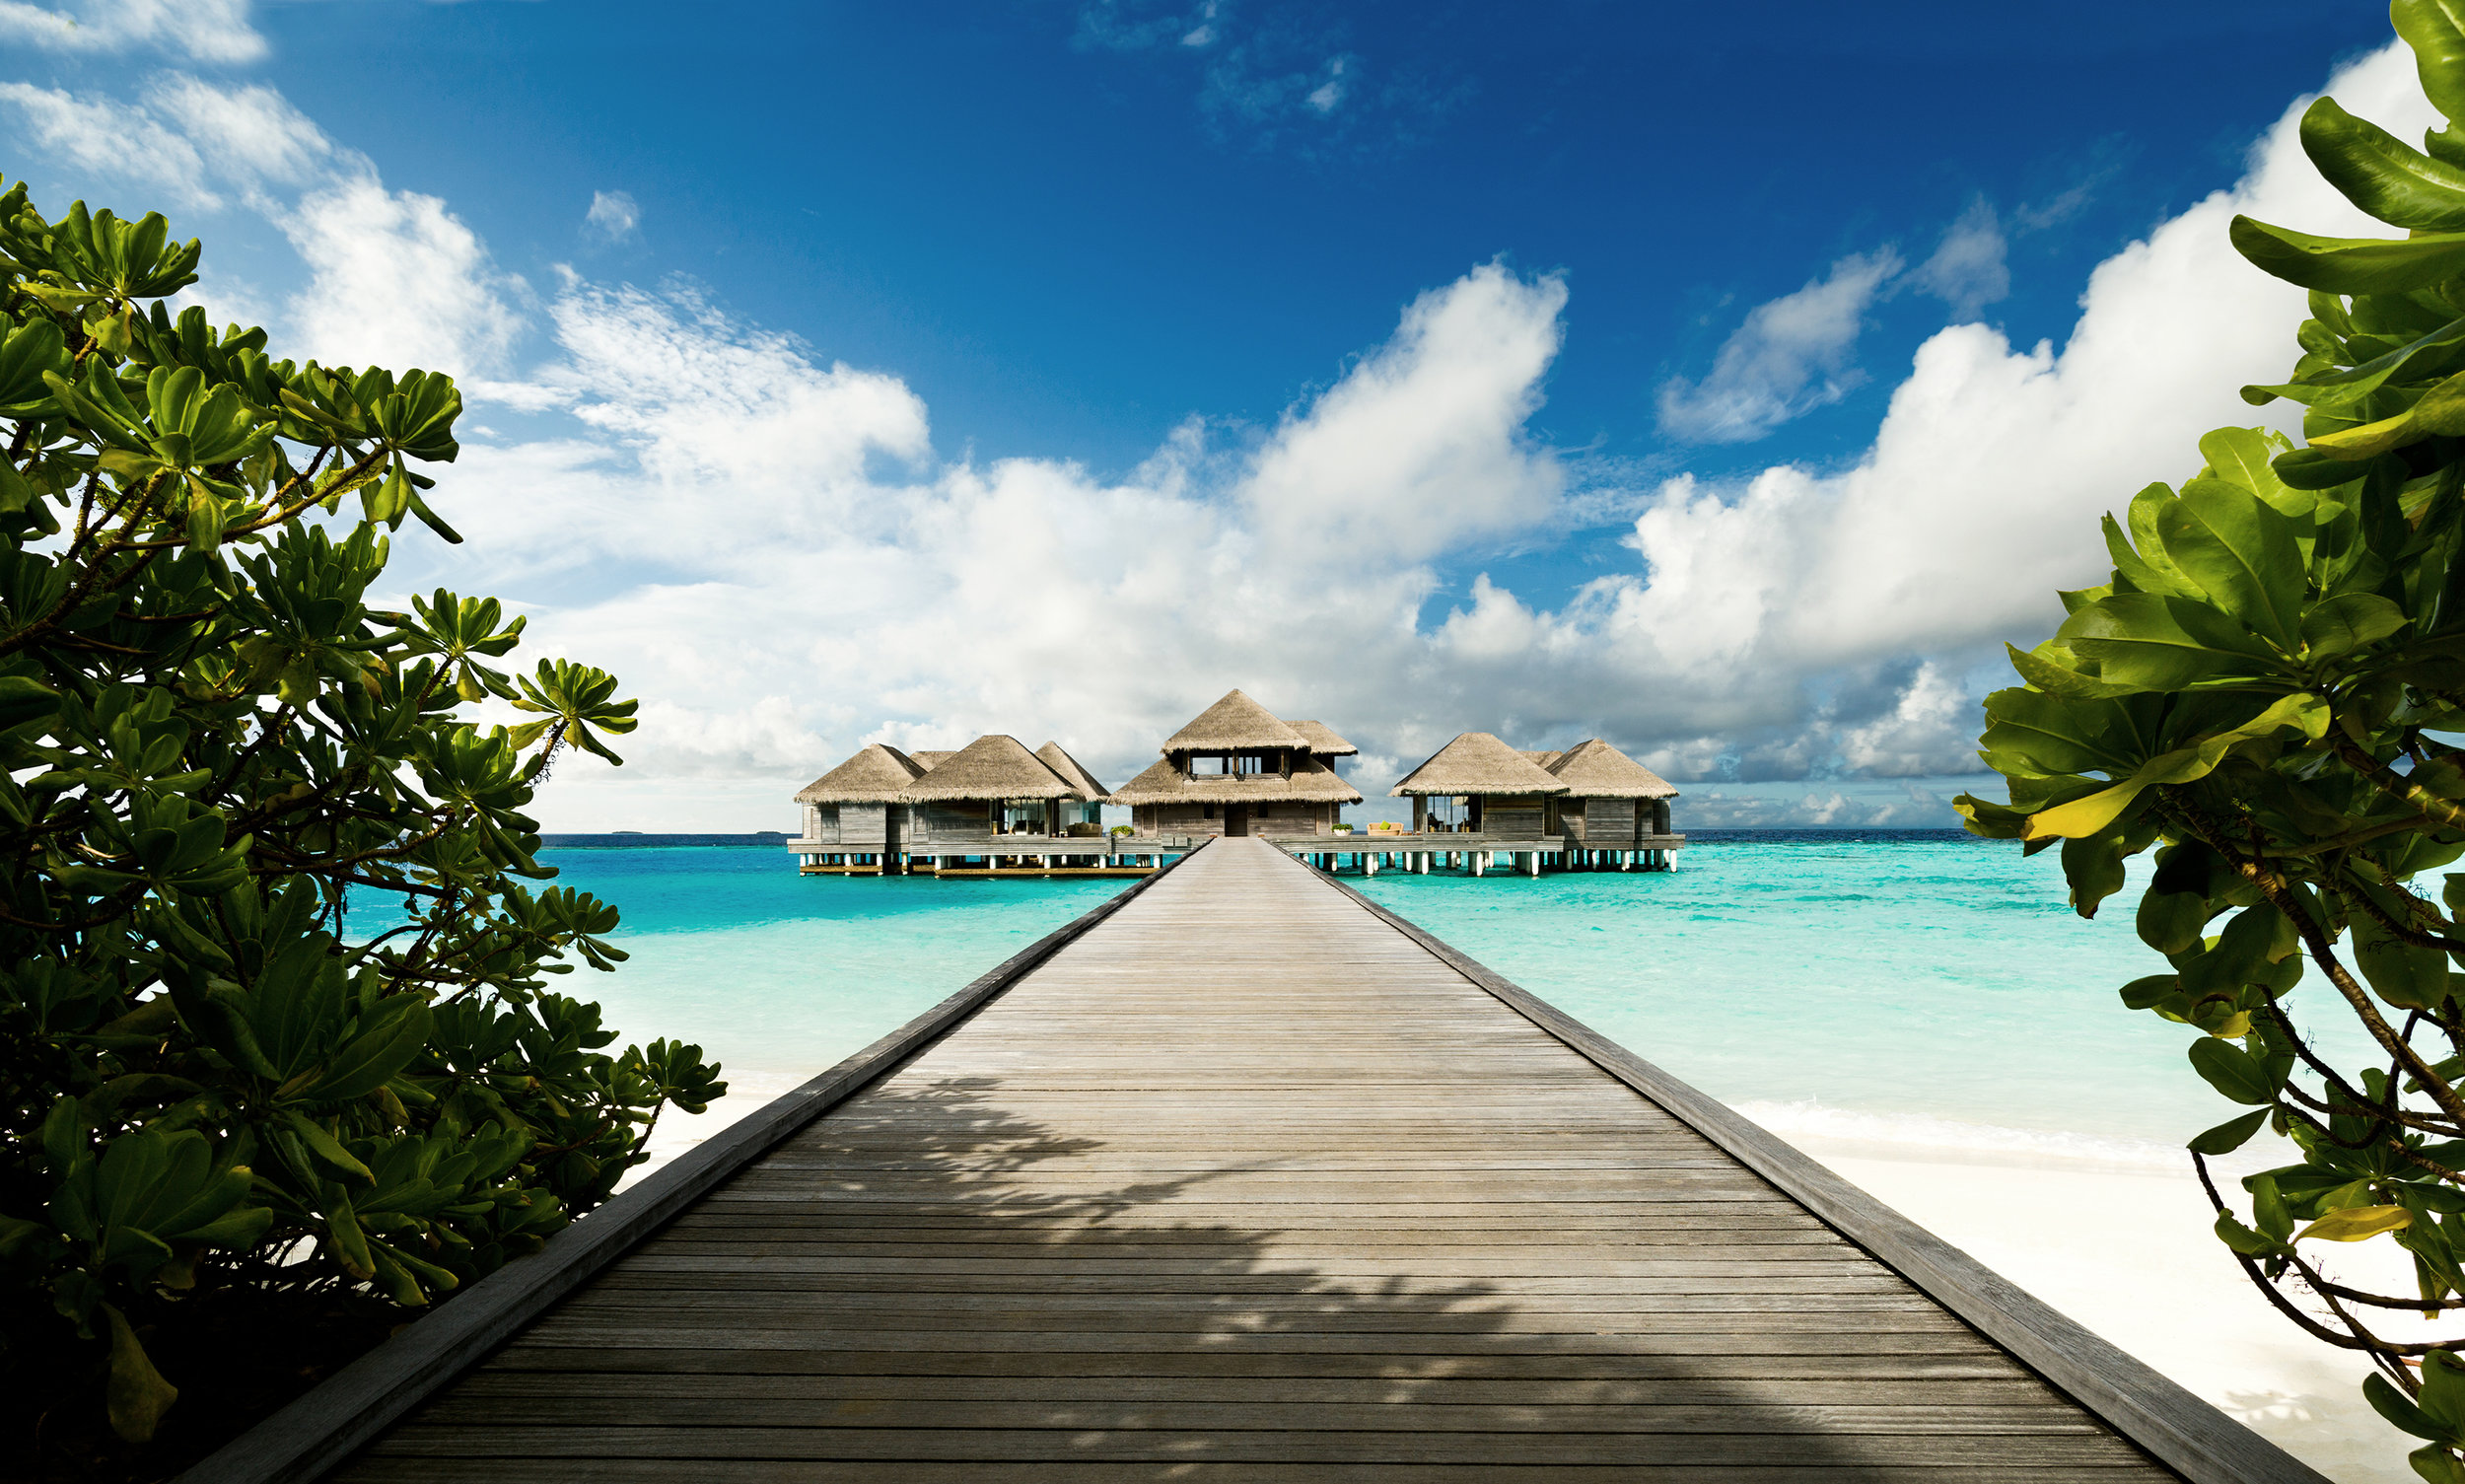 PHUV_Spa_Jetty_01_G_A_L.jpg